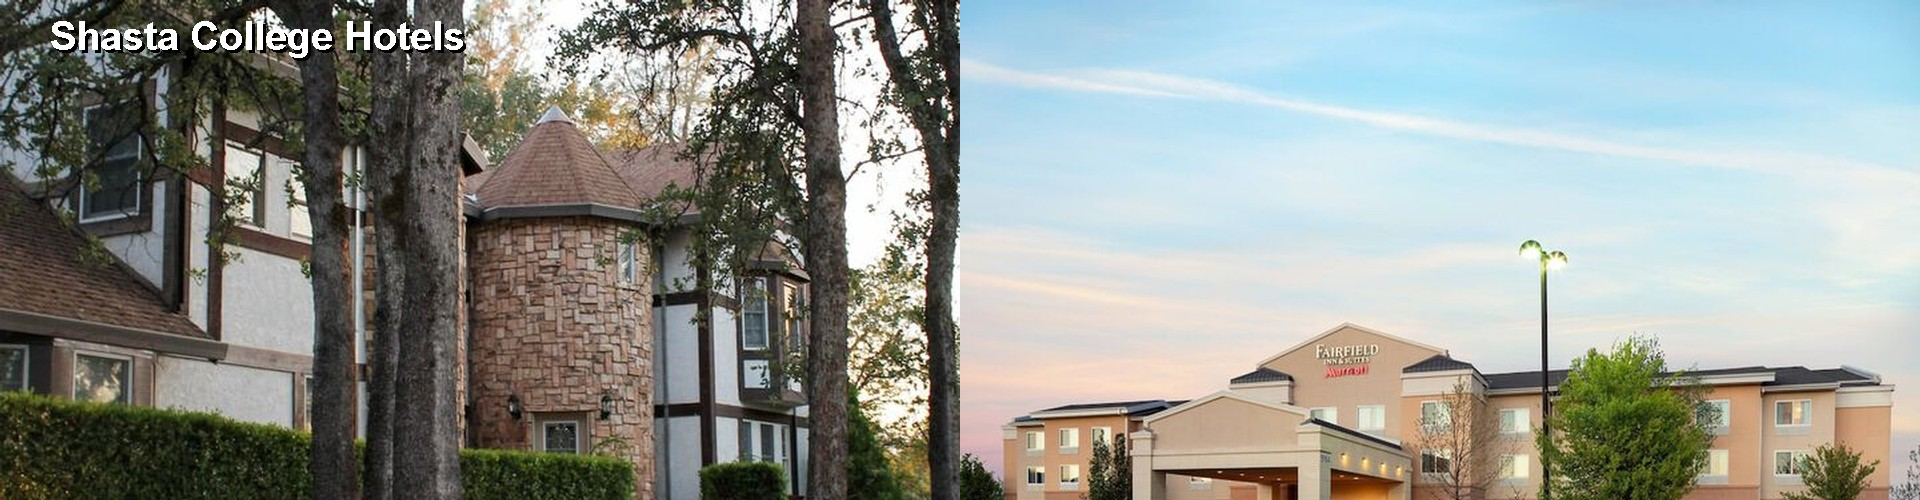 5 Best Hotels Near Shasta College